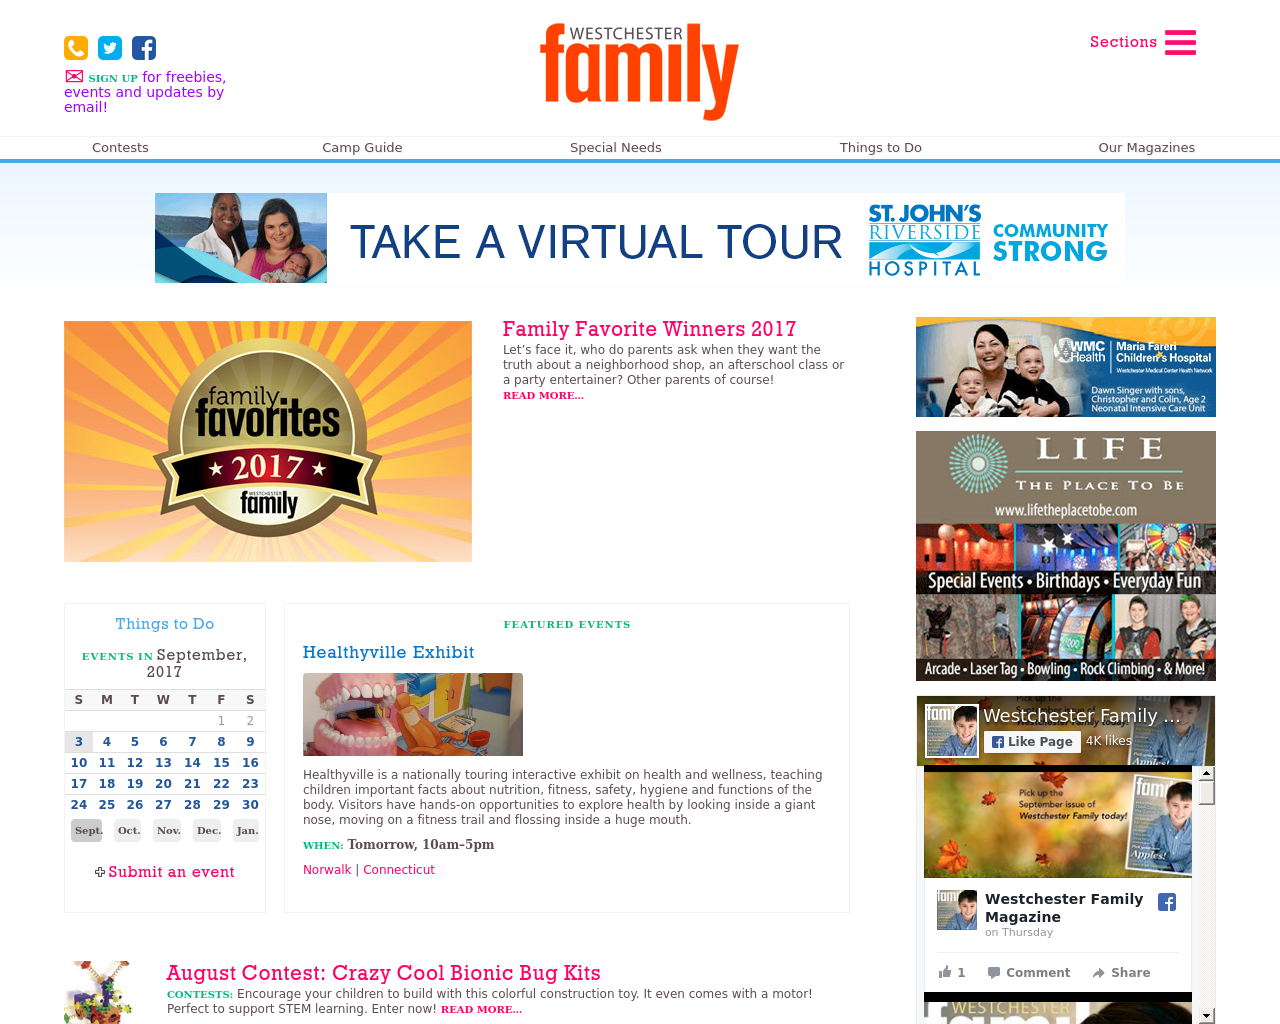 Westchester-Family-Advertising-Reviews-Pricing